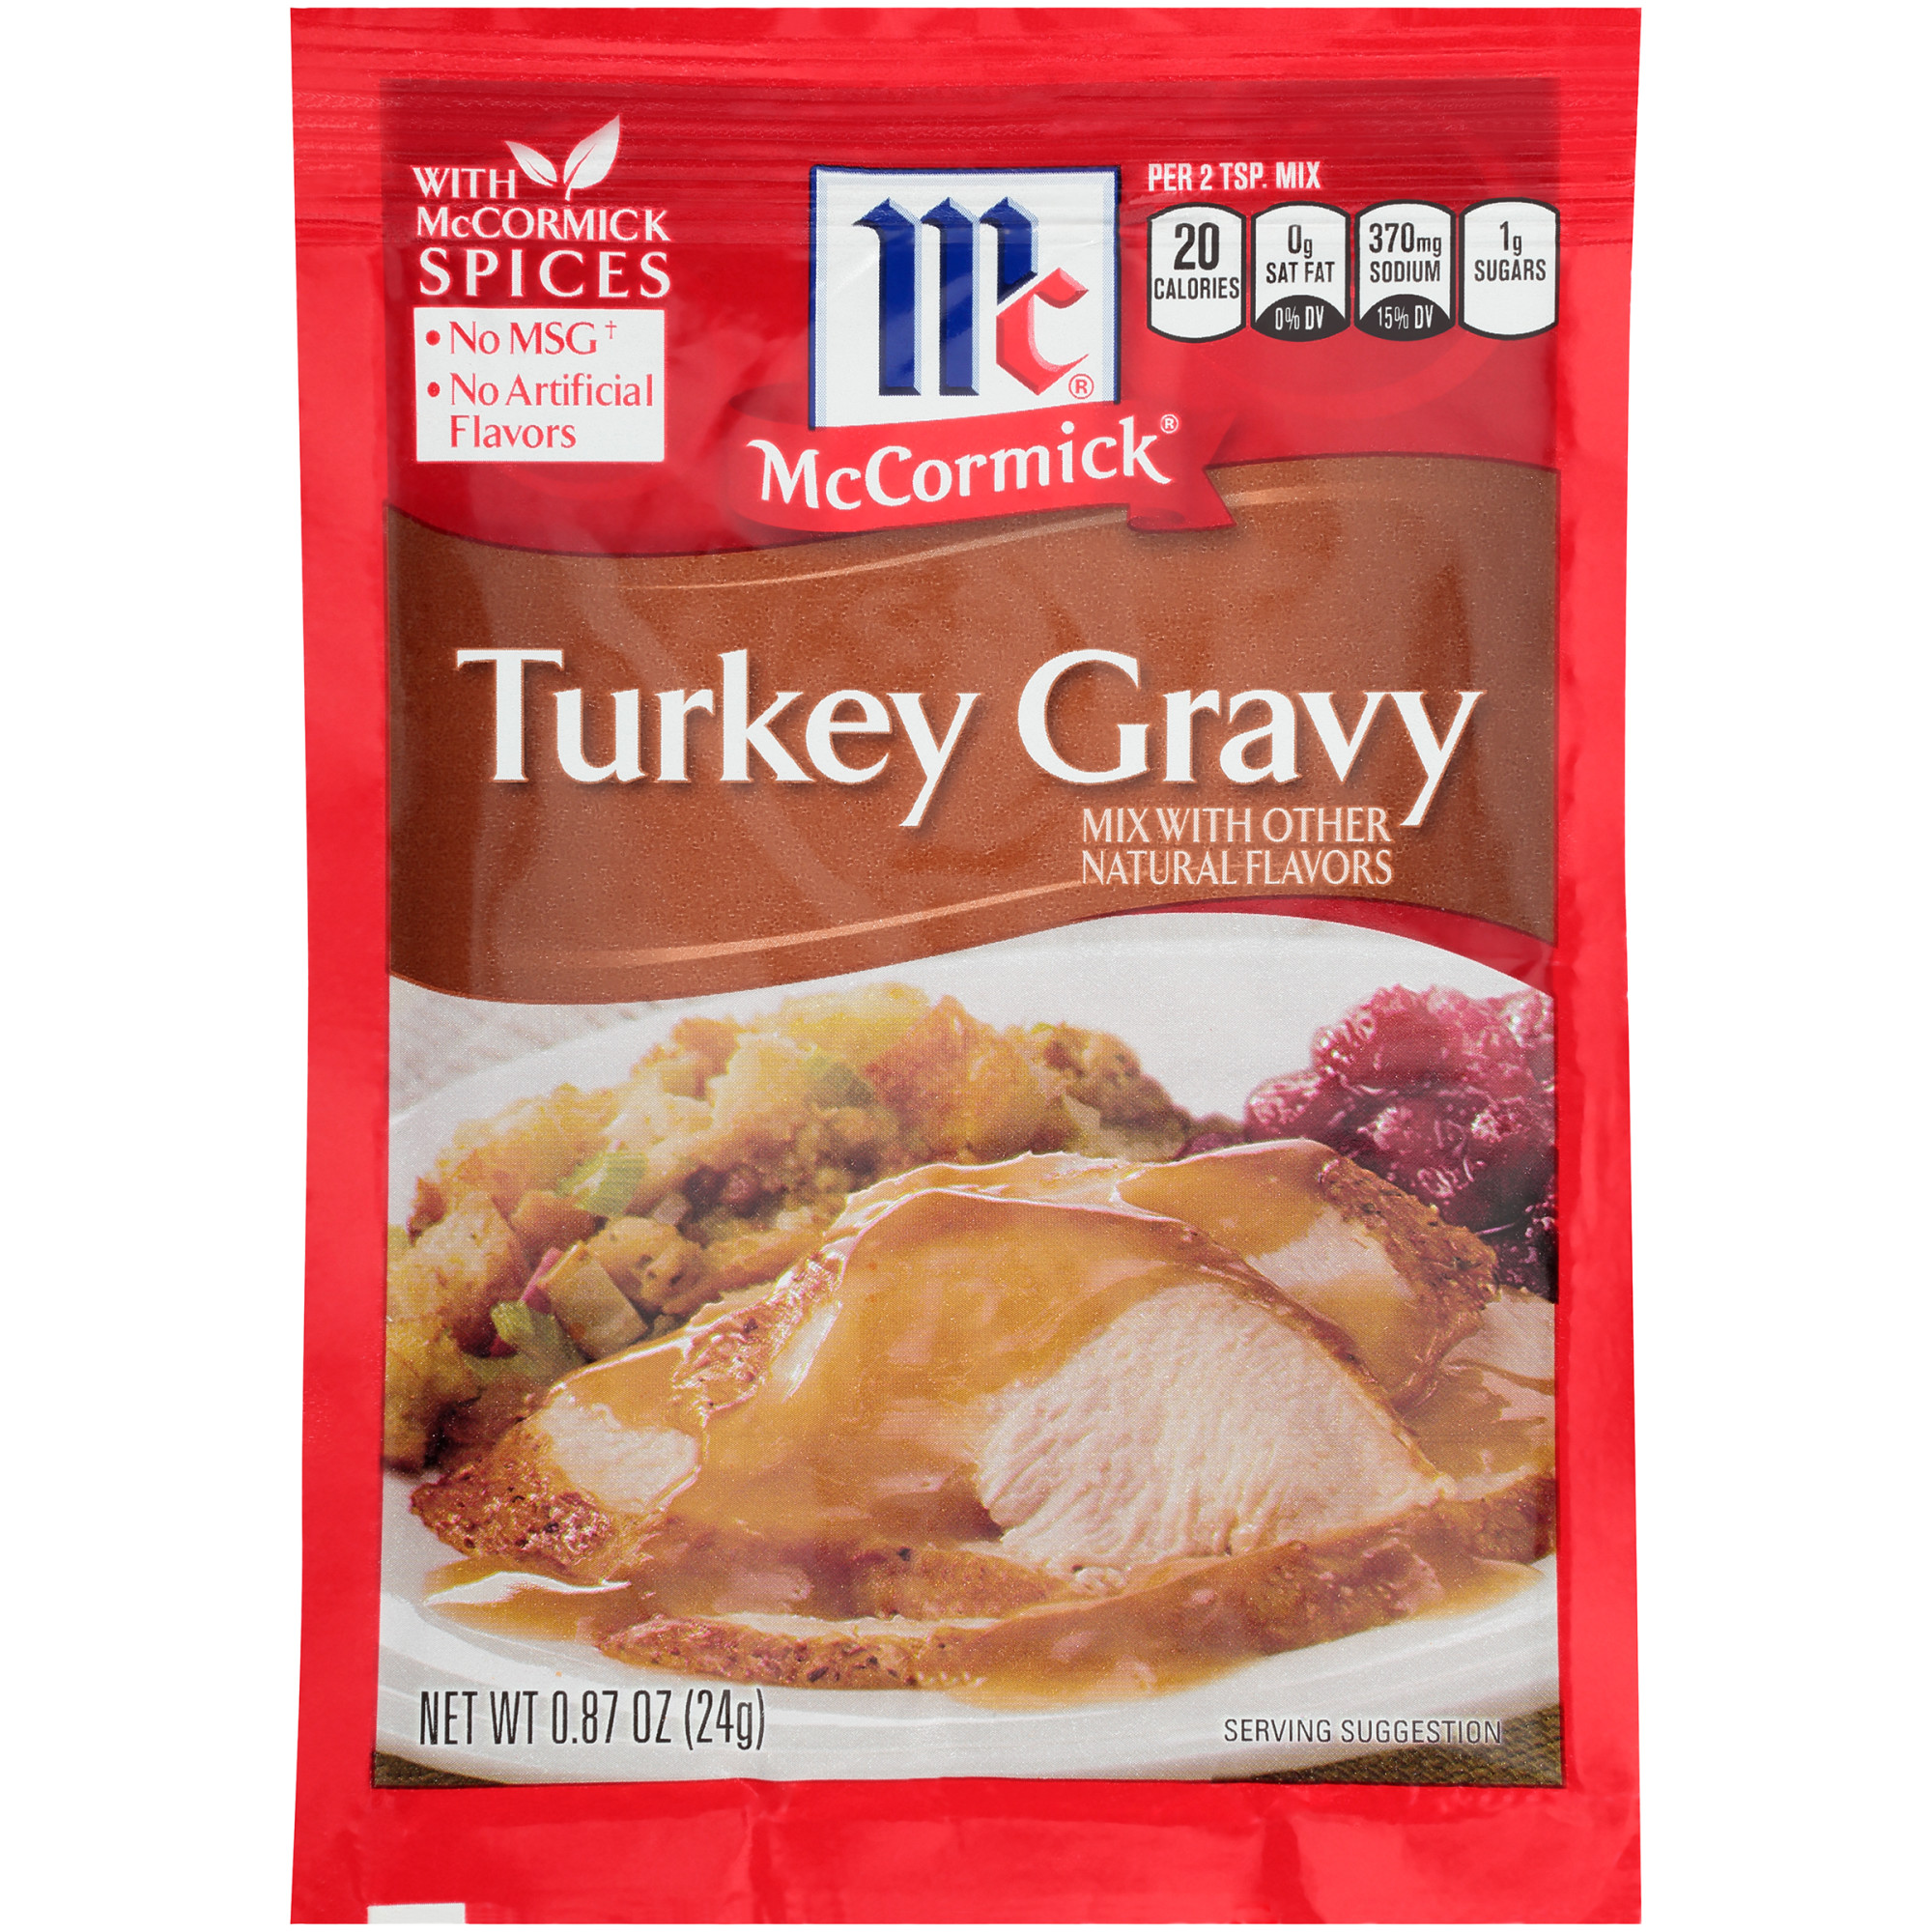 McCormick Turkey Gravy Seasoning Mix, 0.87 oz Pouch